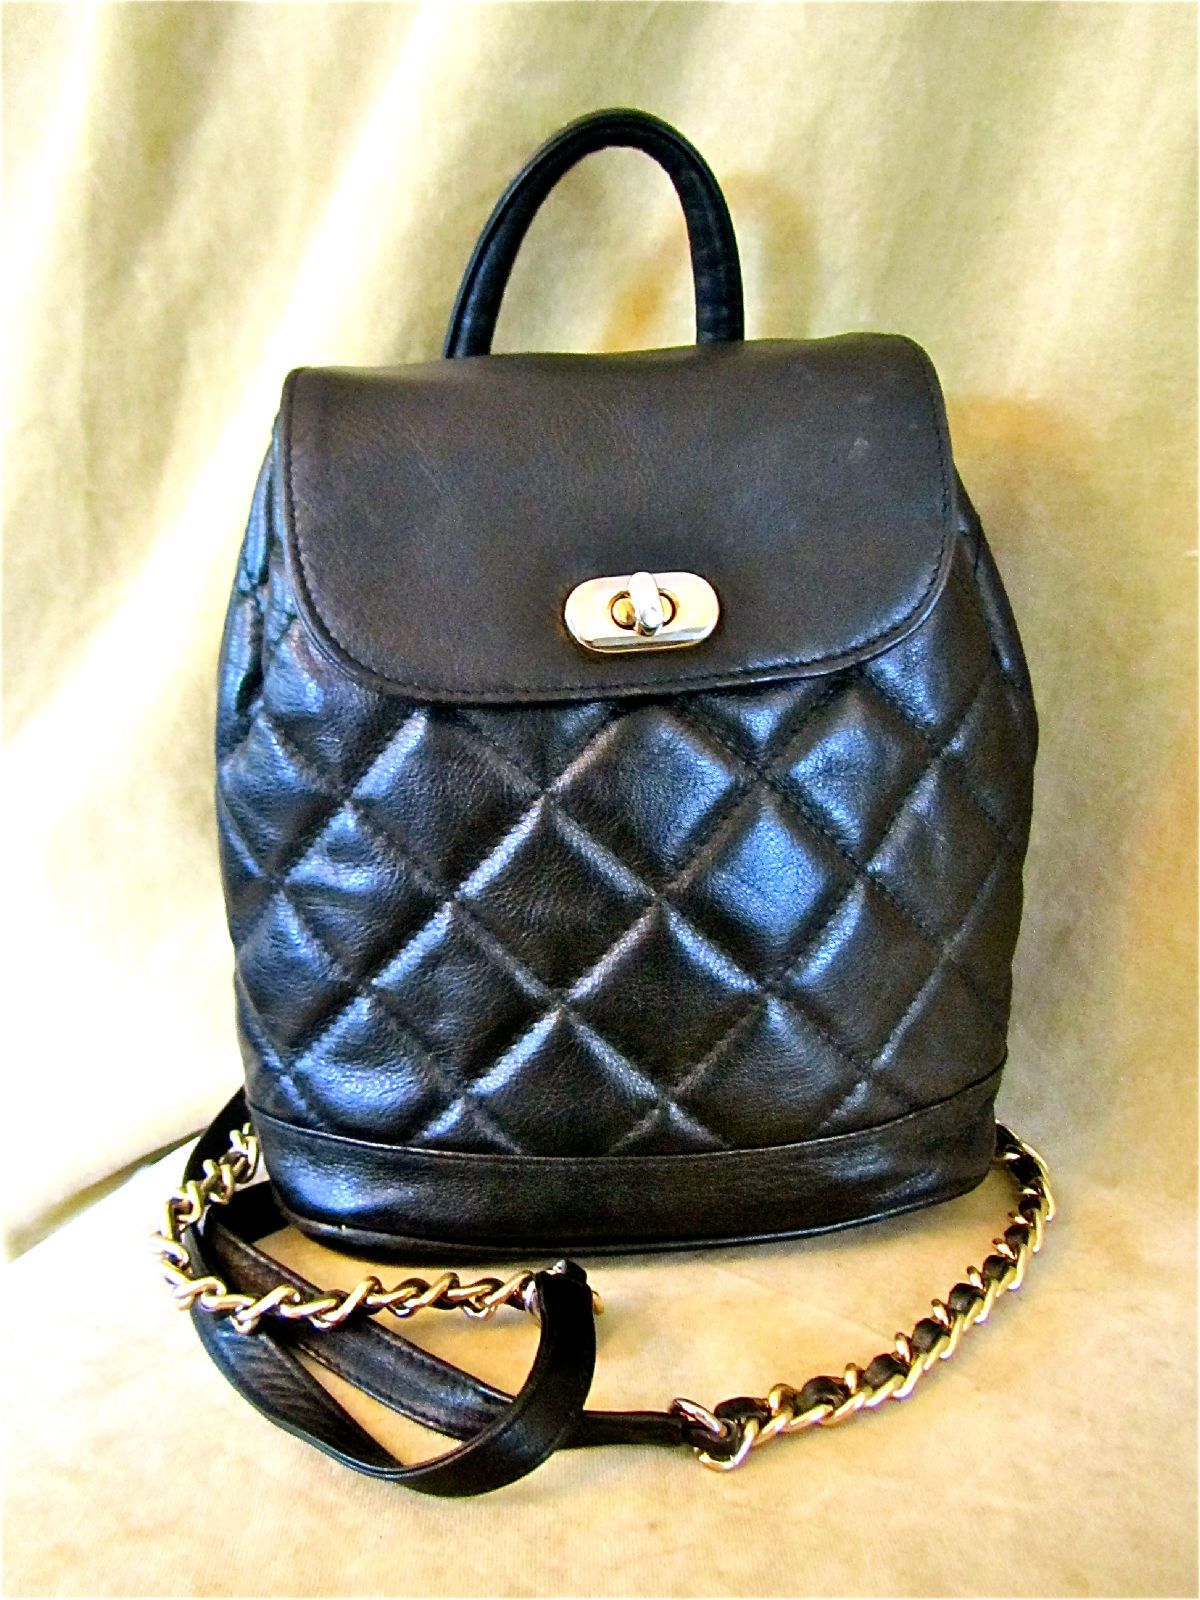 Leather quilted handbags and purses - Women S Quilted Leather Designer Backpack Gold Chain Bag Vtg Handbag Black Purse